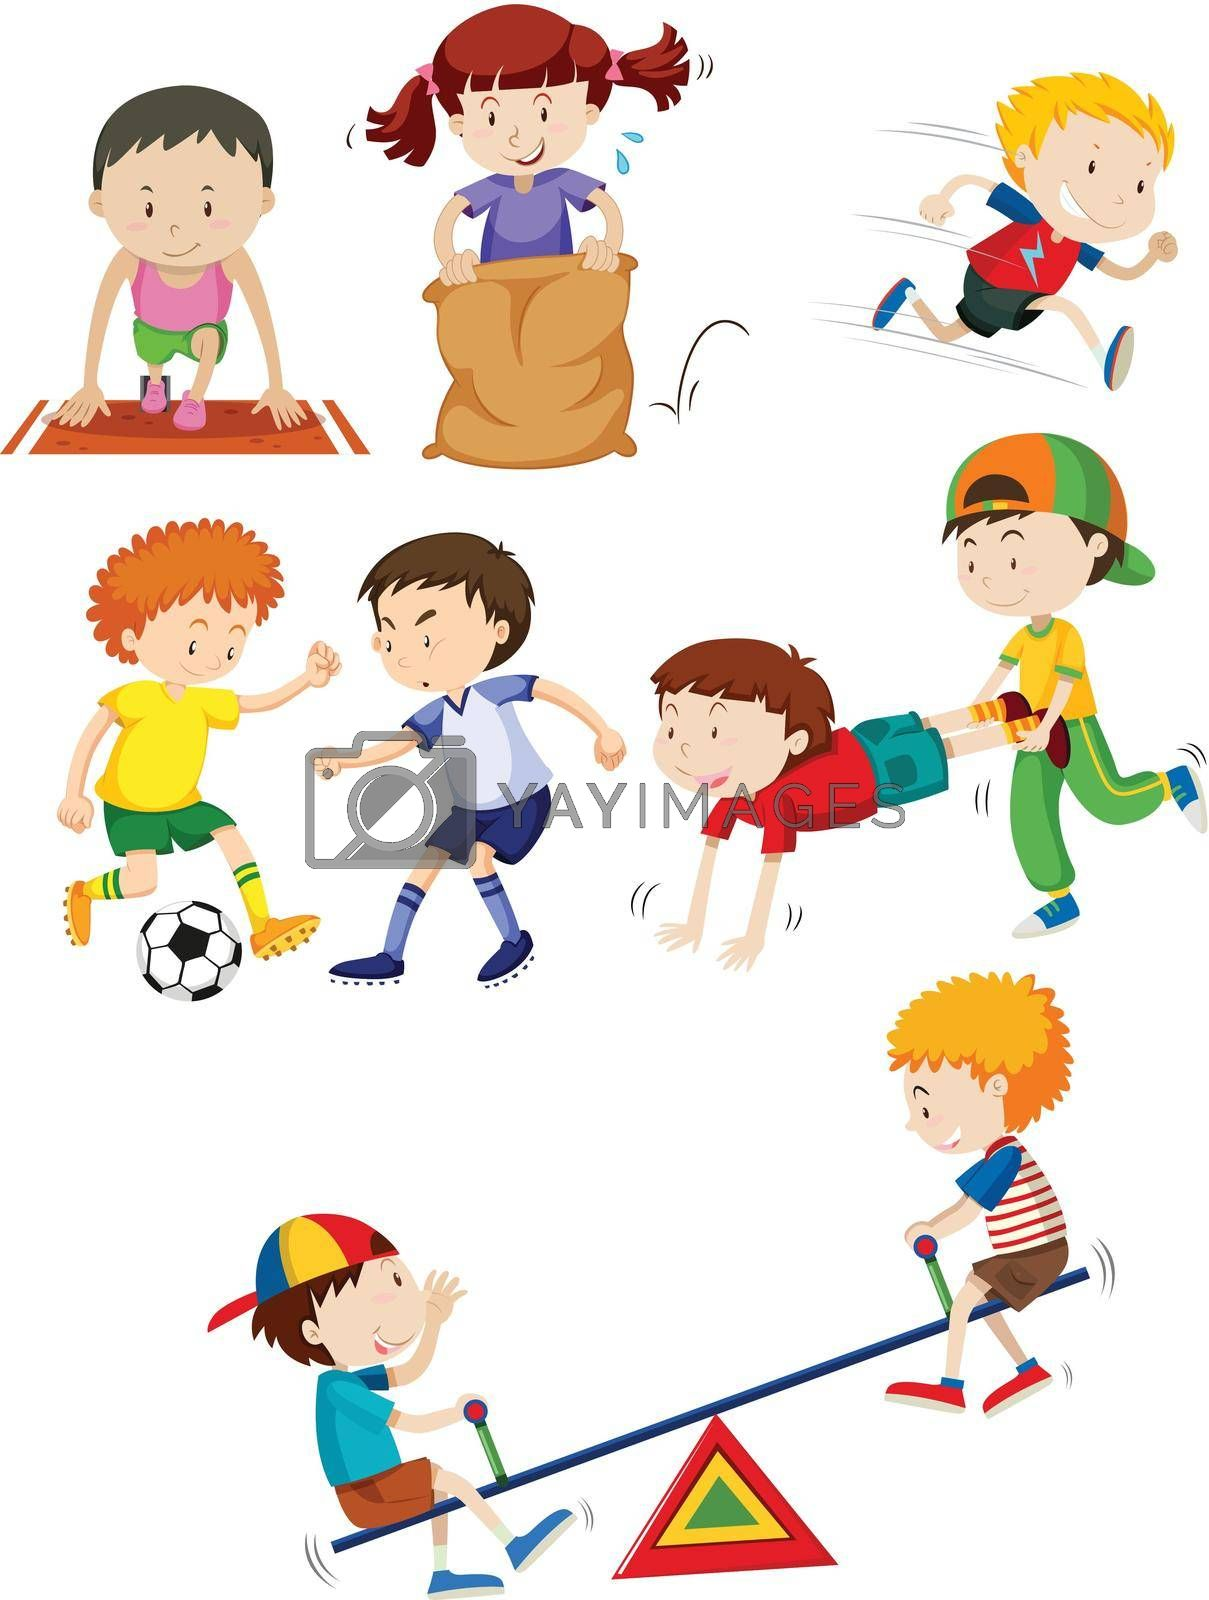 Young children and activity illustration